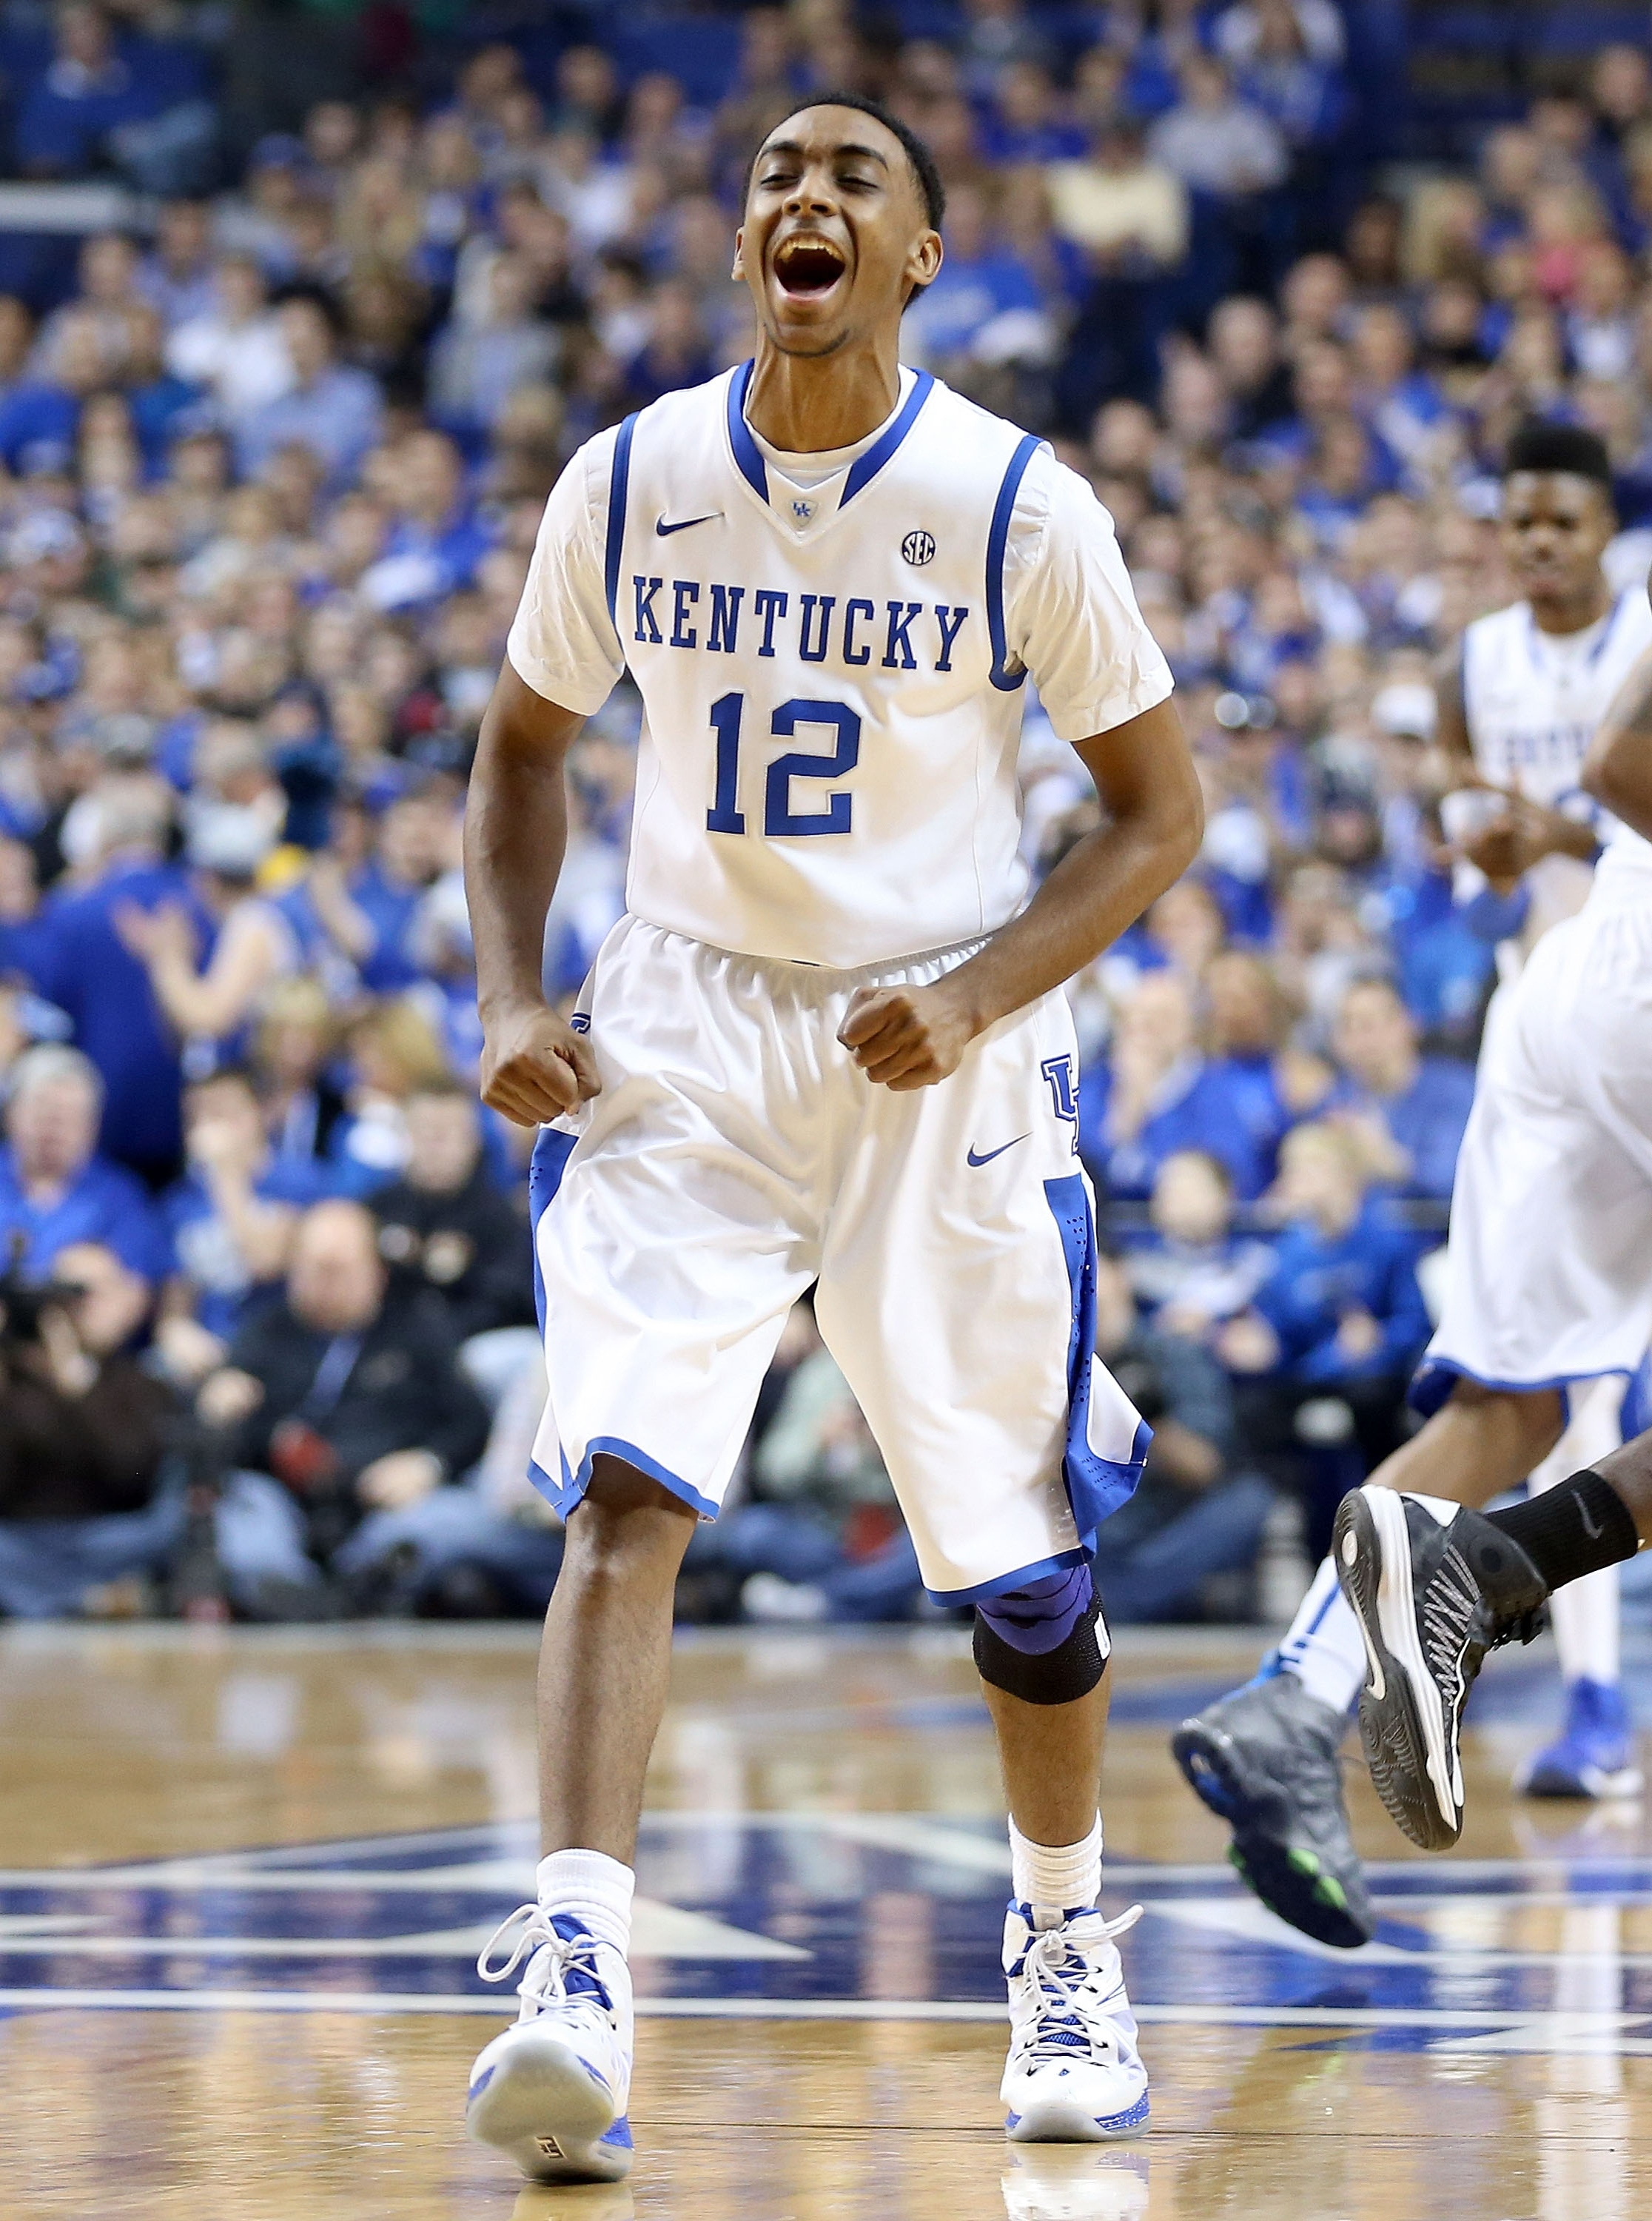 Ryan Harrow and the Wildcats hope to have more to shout about later in the season. (Getty Images)